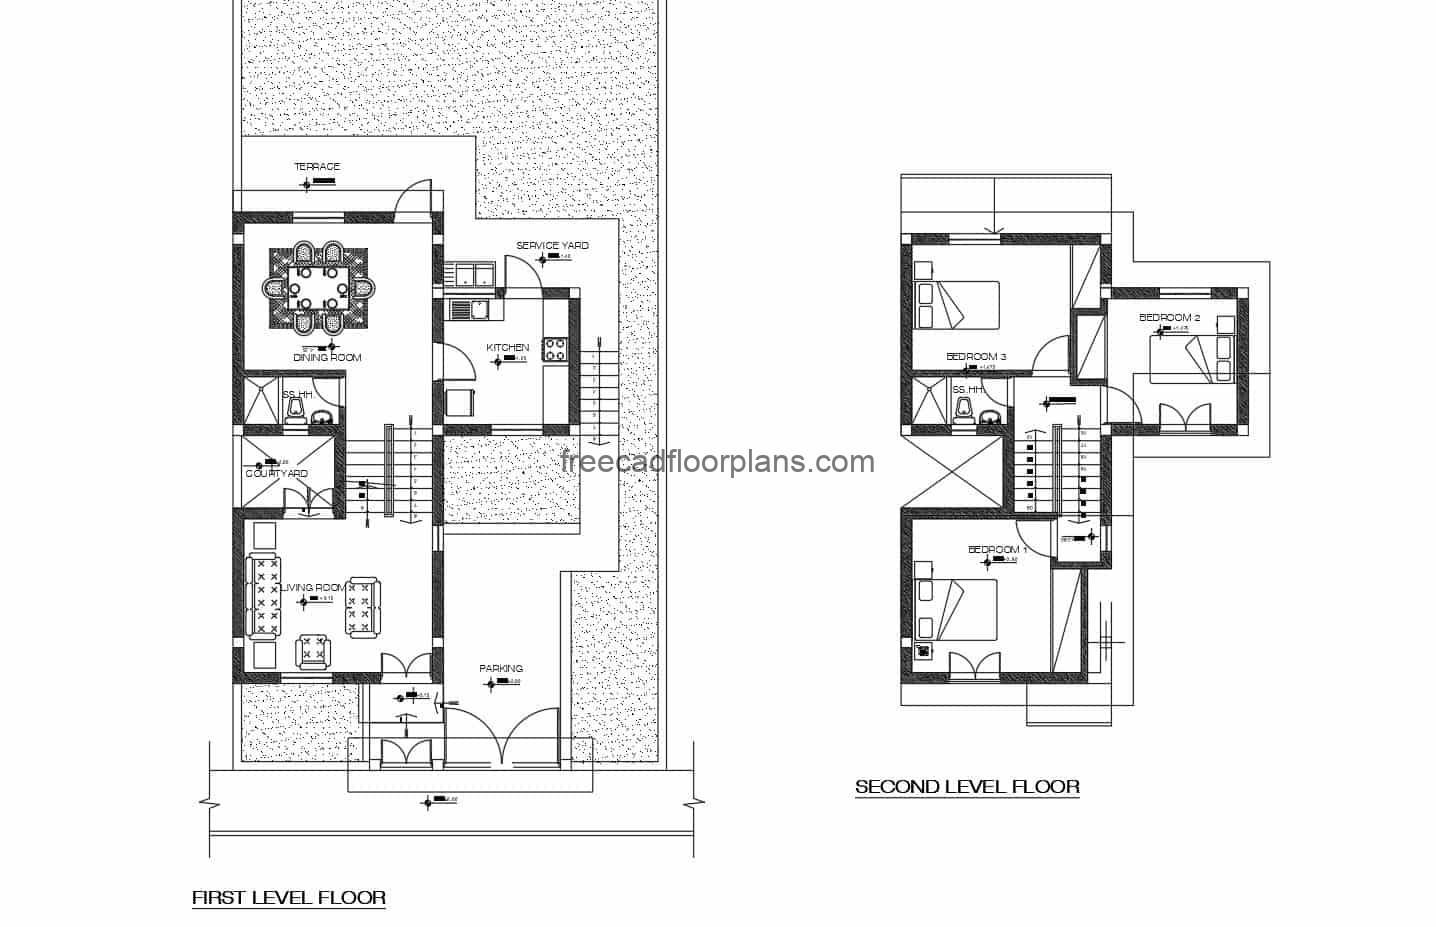 Architectural project in Autocad DWG format of a two-level house with three rooms, furniture blocks in Autocad, architectural plant, dimensioning, elevations, sections and drawing details in DWG format for free download